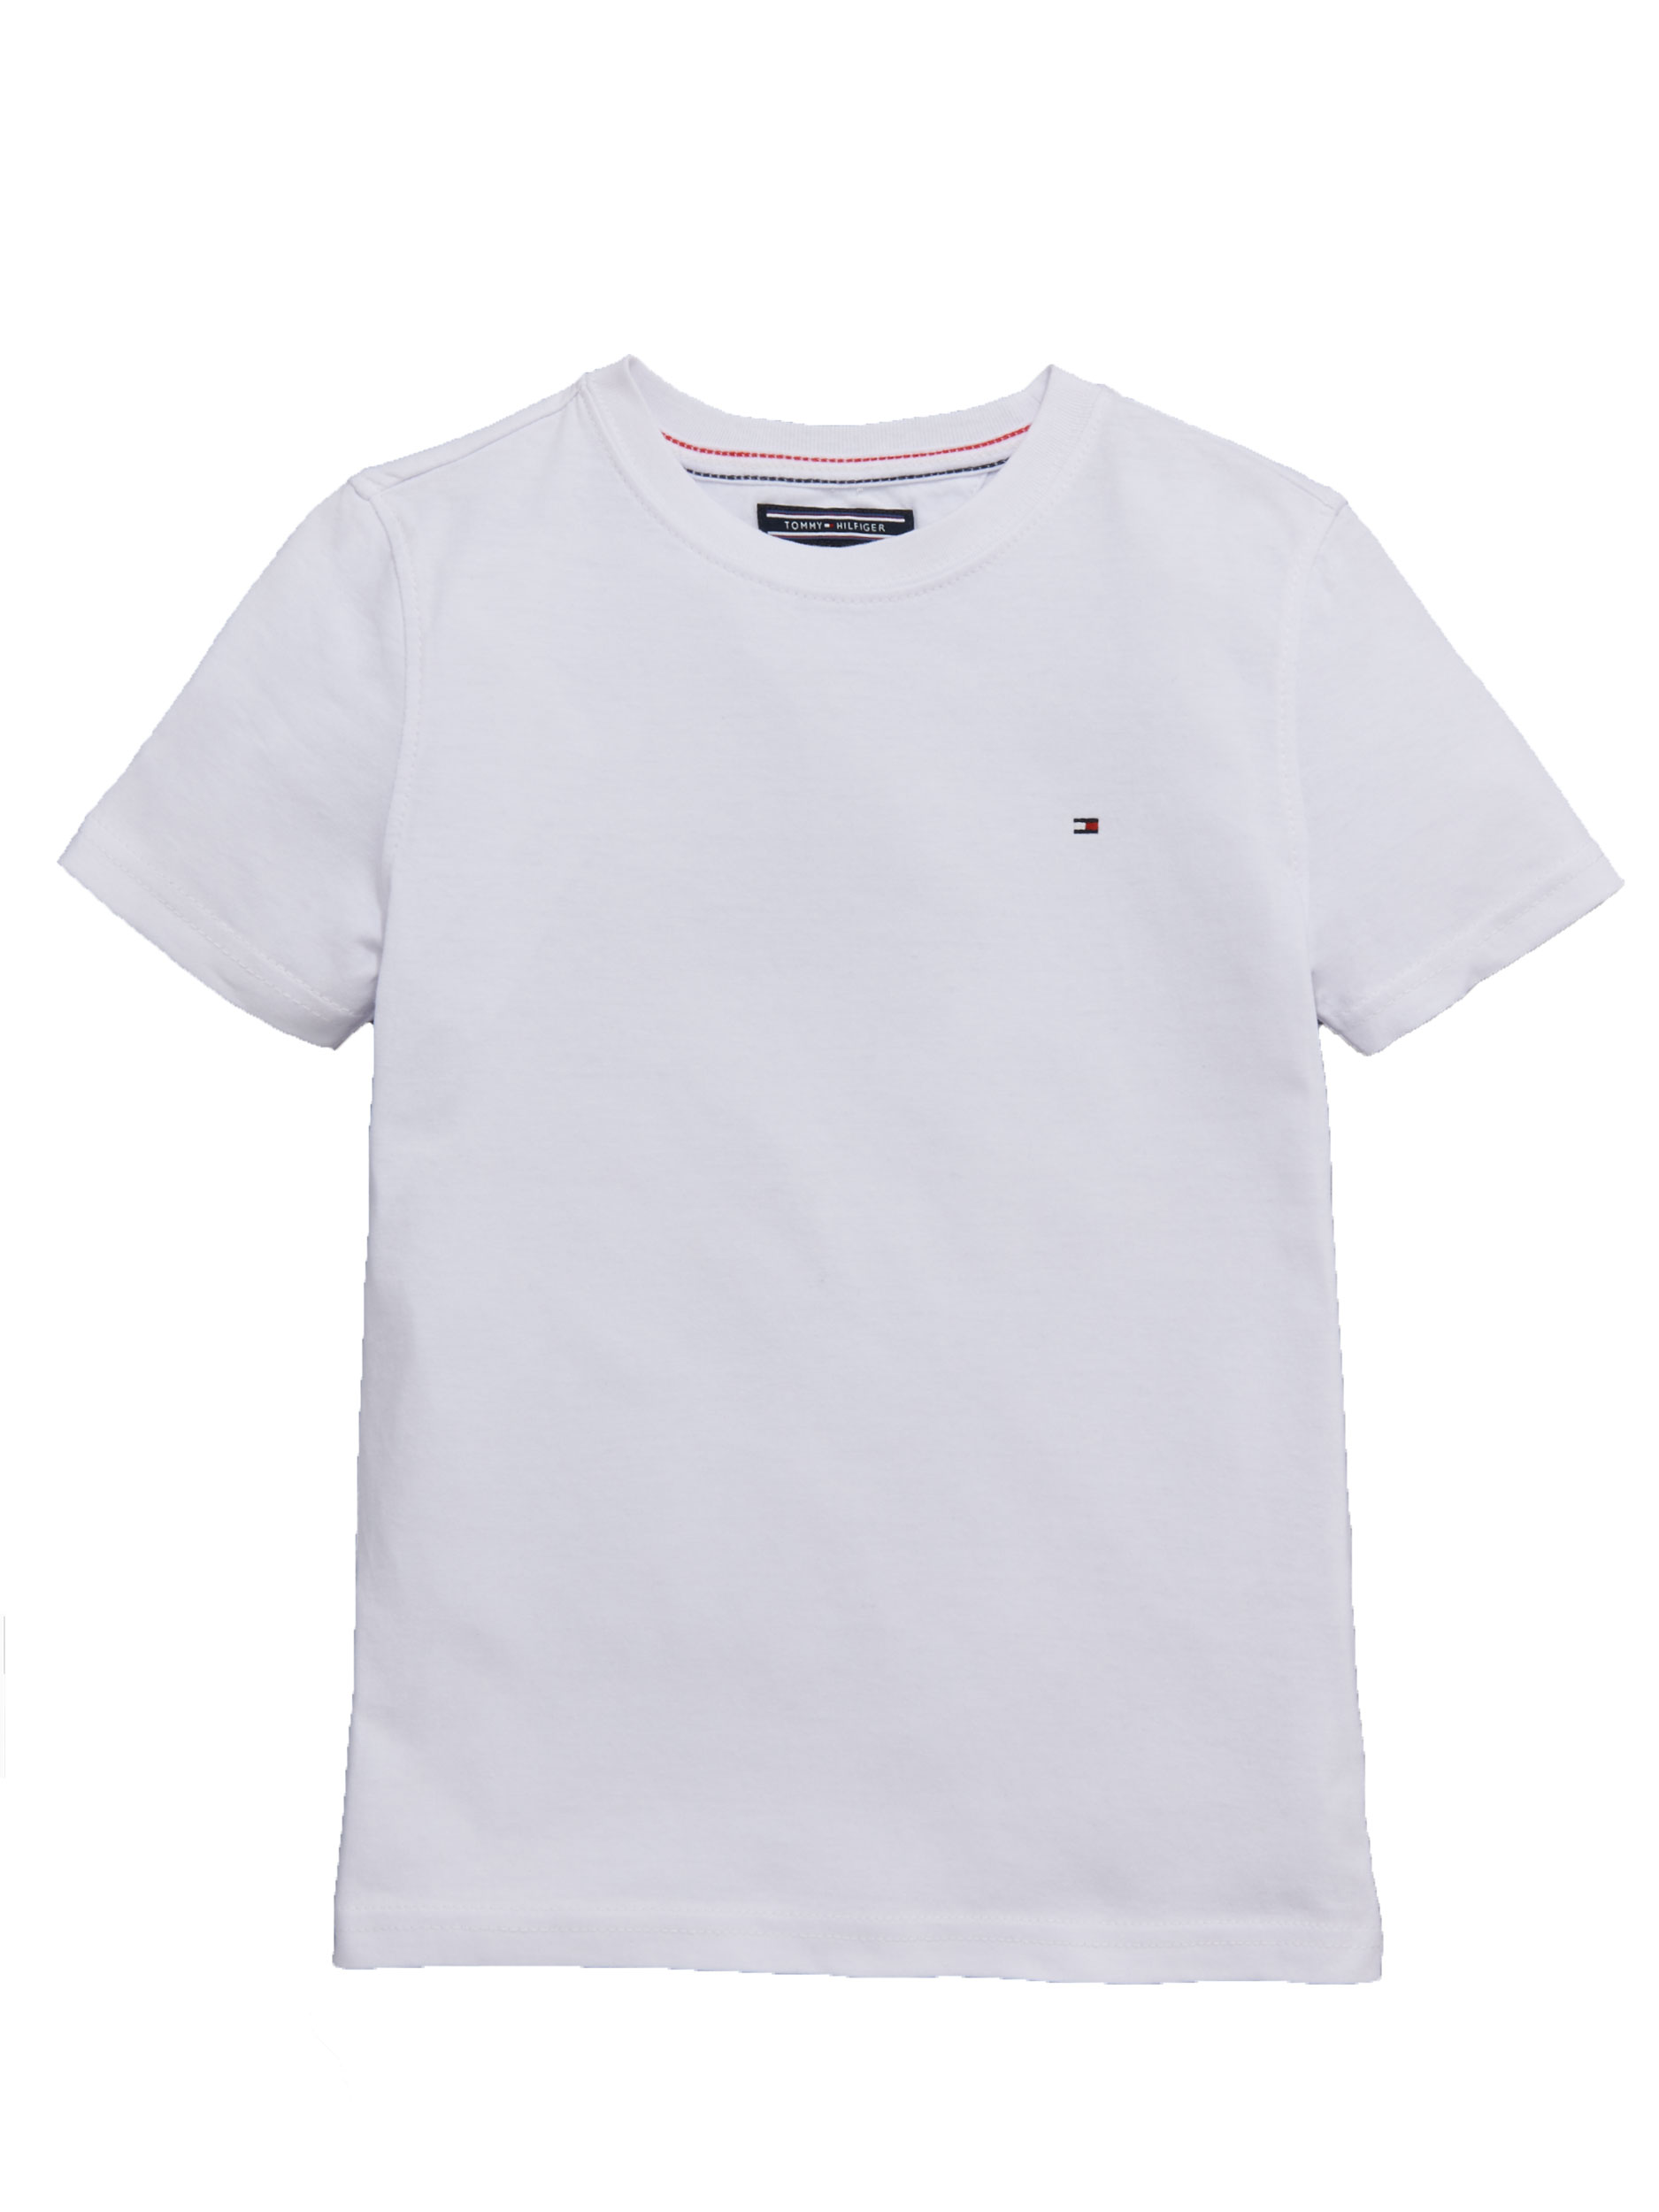 Tommy Hilfiger Short Sleeved Classic T-Shirt.